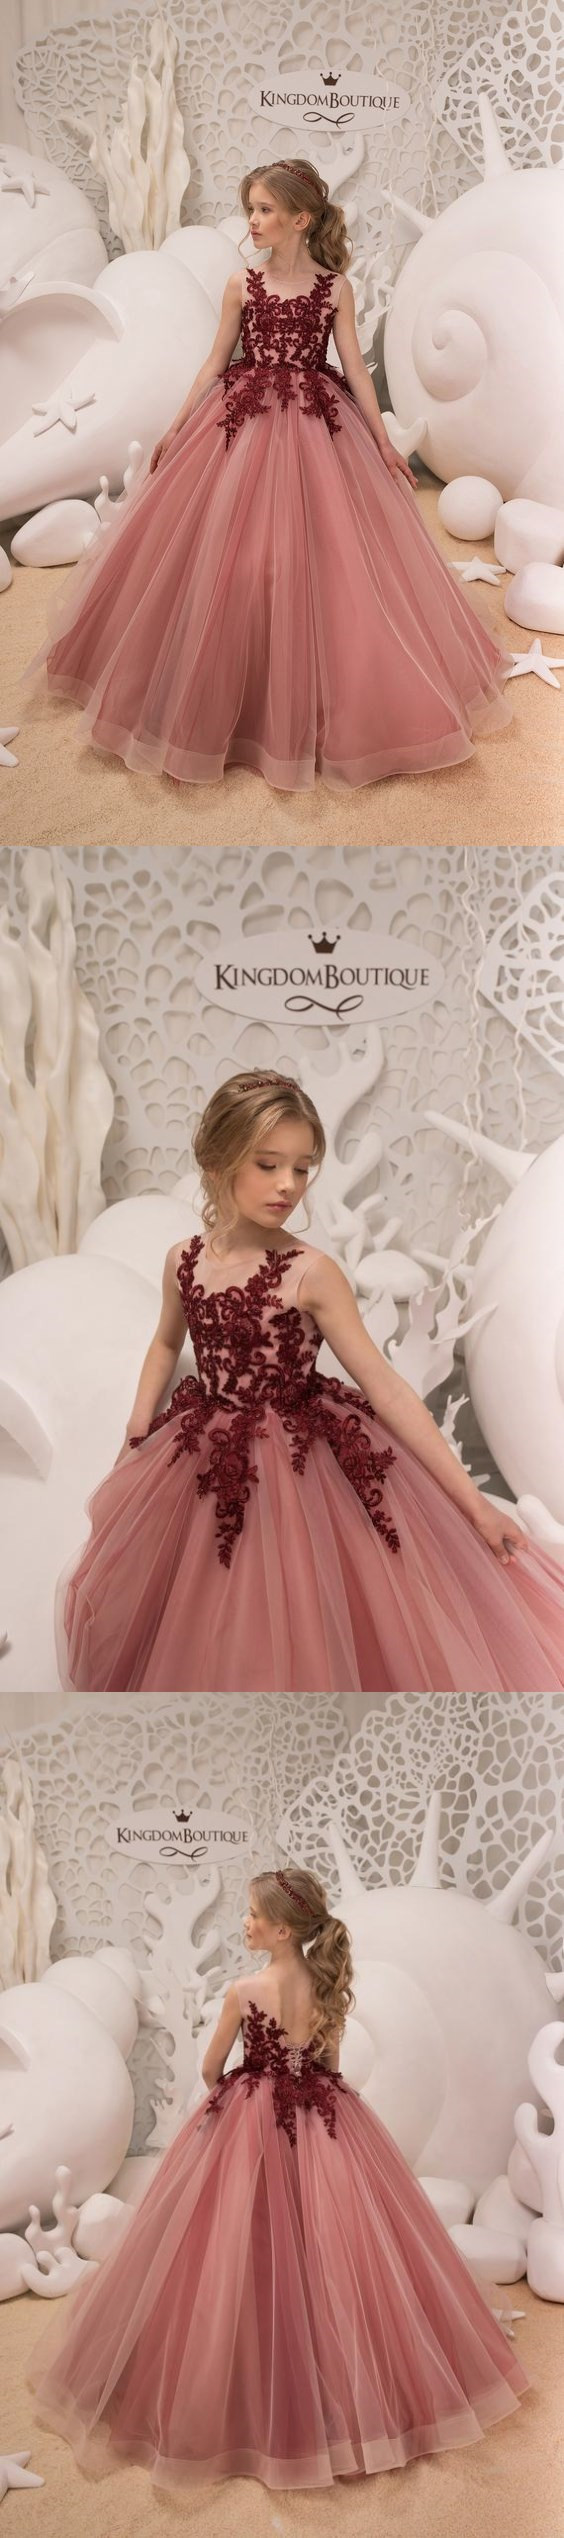 f434aadc56e9e Blush Pink and Maroon Flower Girl Dress Birthday Wedding Party Holiday